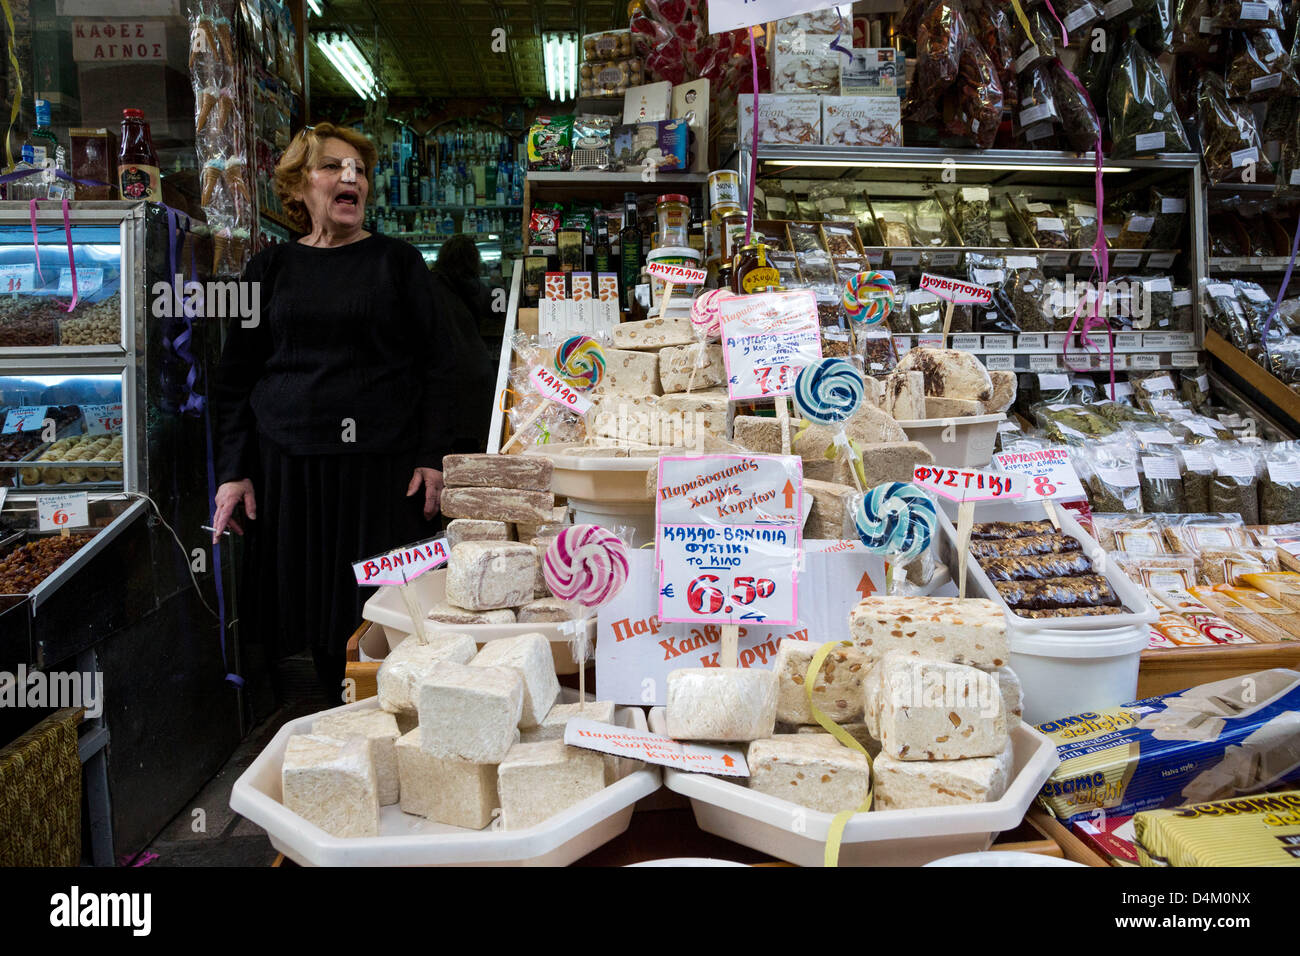 Thessaloniki, Greece. March 15, 2013. Greeks prepare for Ash Monday buying lenten foods like fishes, mollusks, vegetables - Stock Image